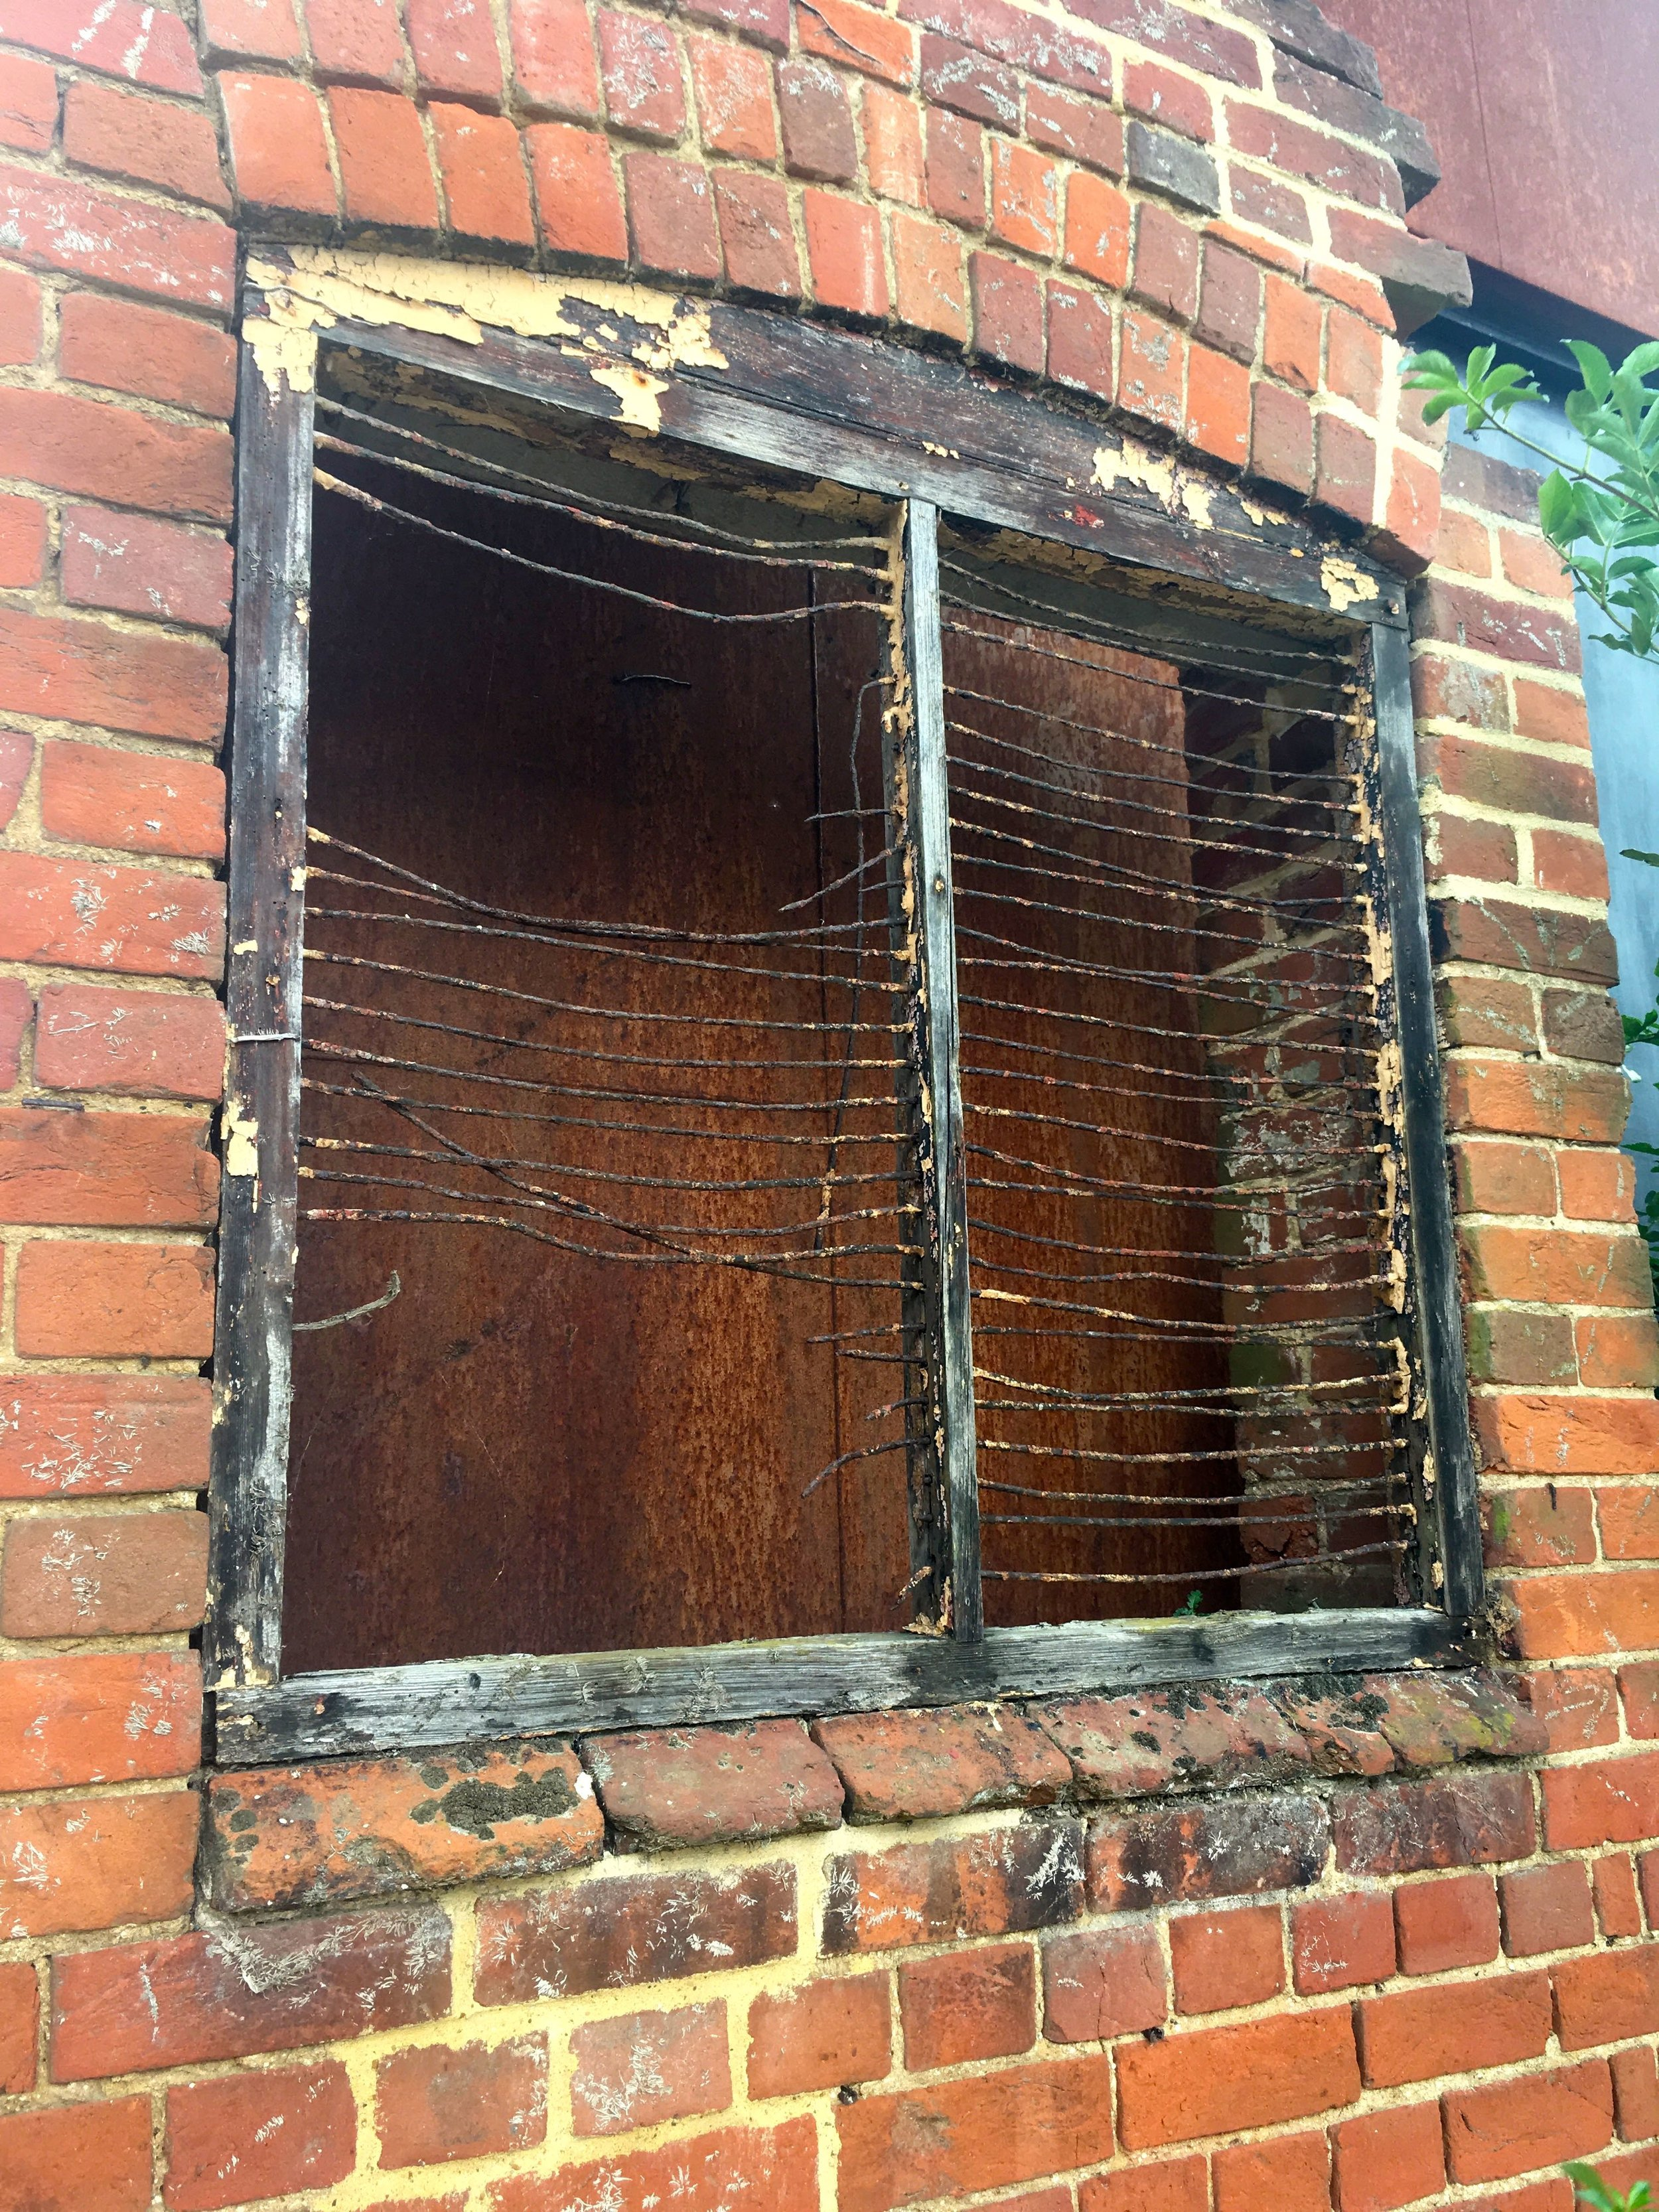 The windows at the dovecote have seen better days